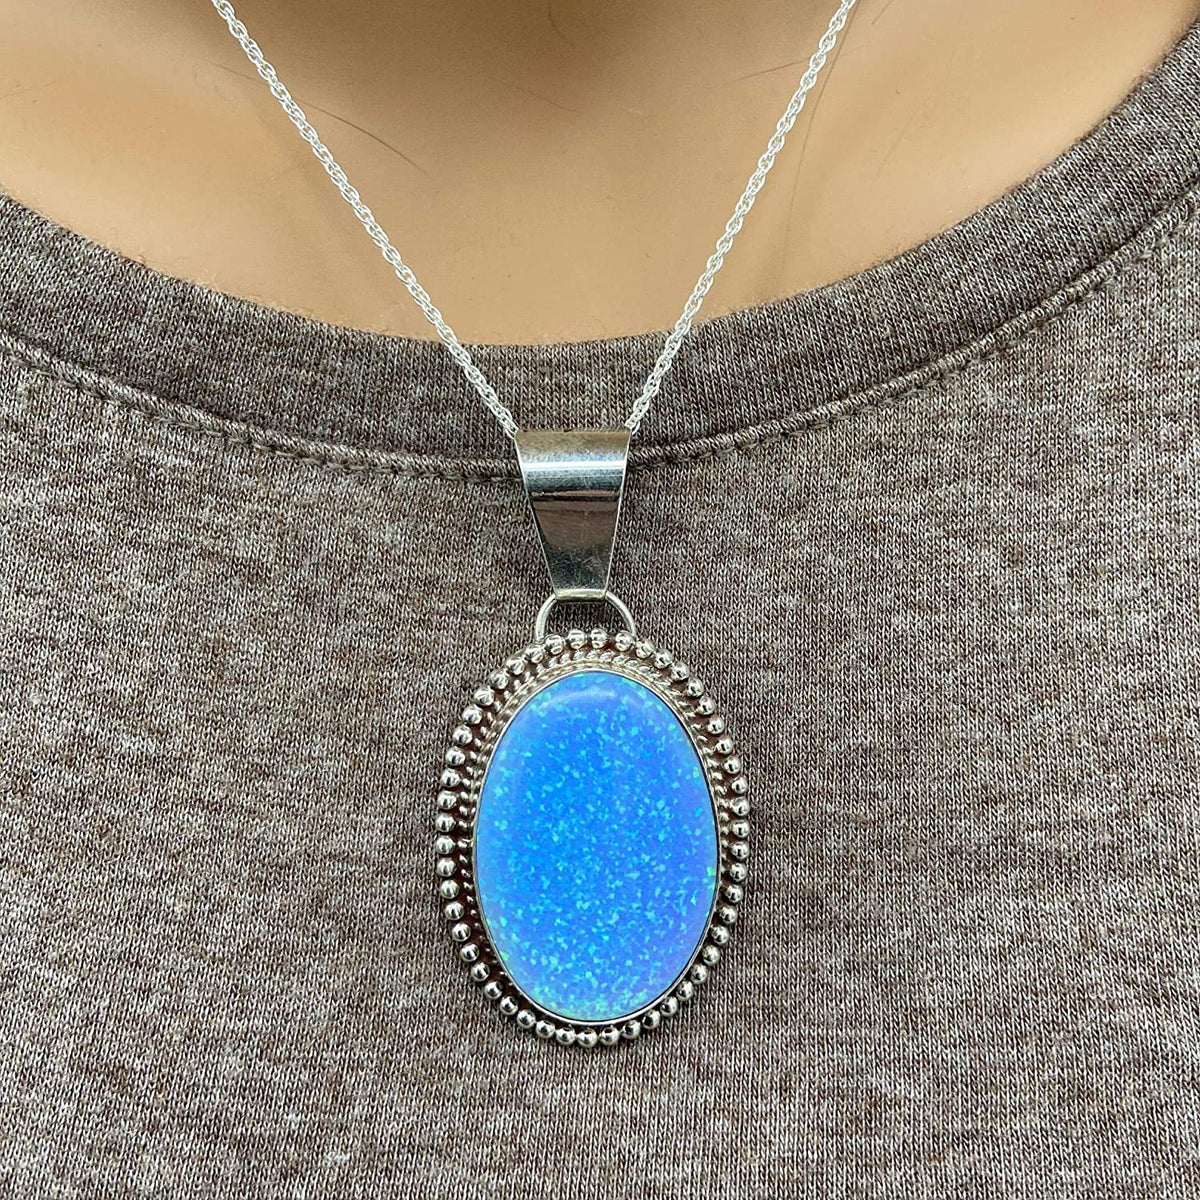 Blue Desert Opal Necklace, Pendant and Chain Set, 925 Sterling Silver, Native American USA Handmade, Nickle Free, Synthetic Blue Opal